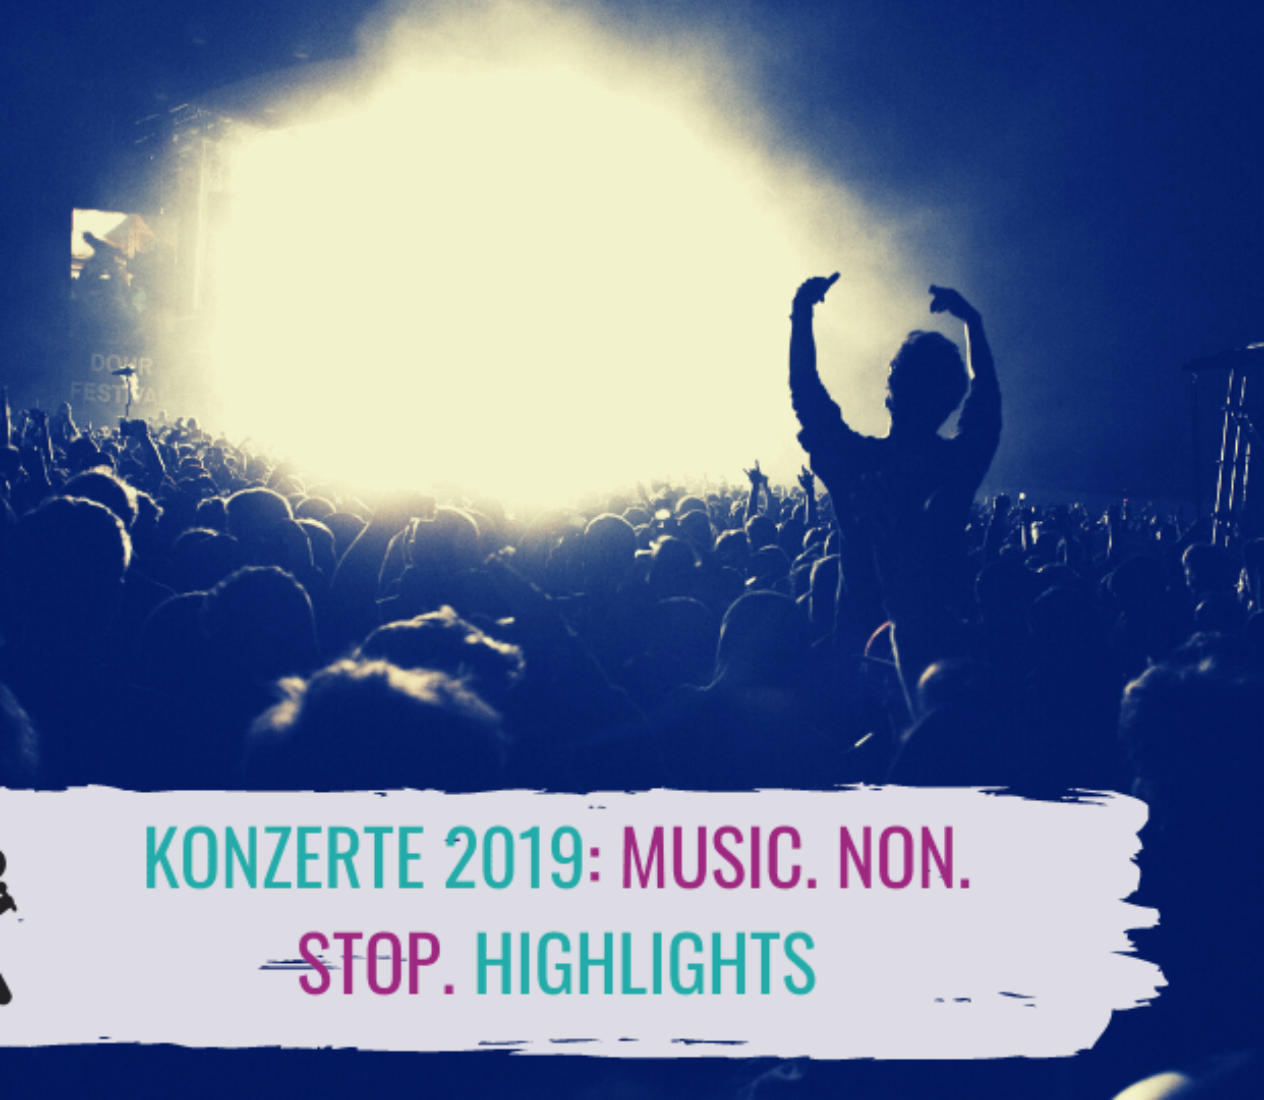 Konzerte 2019: MUSIC. NON. STOP. Highlights